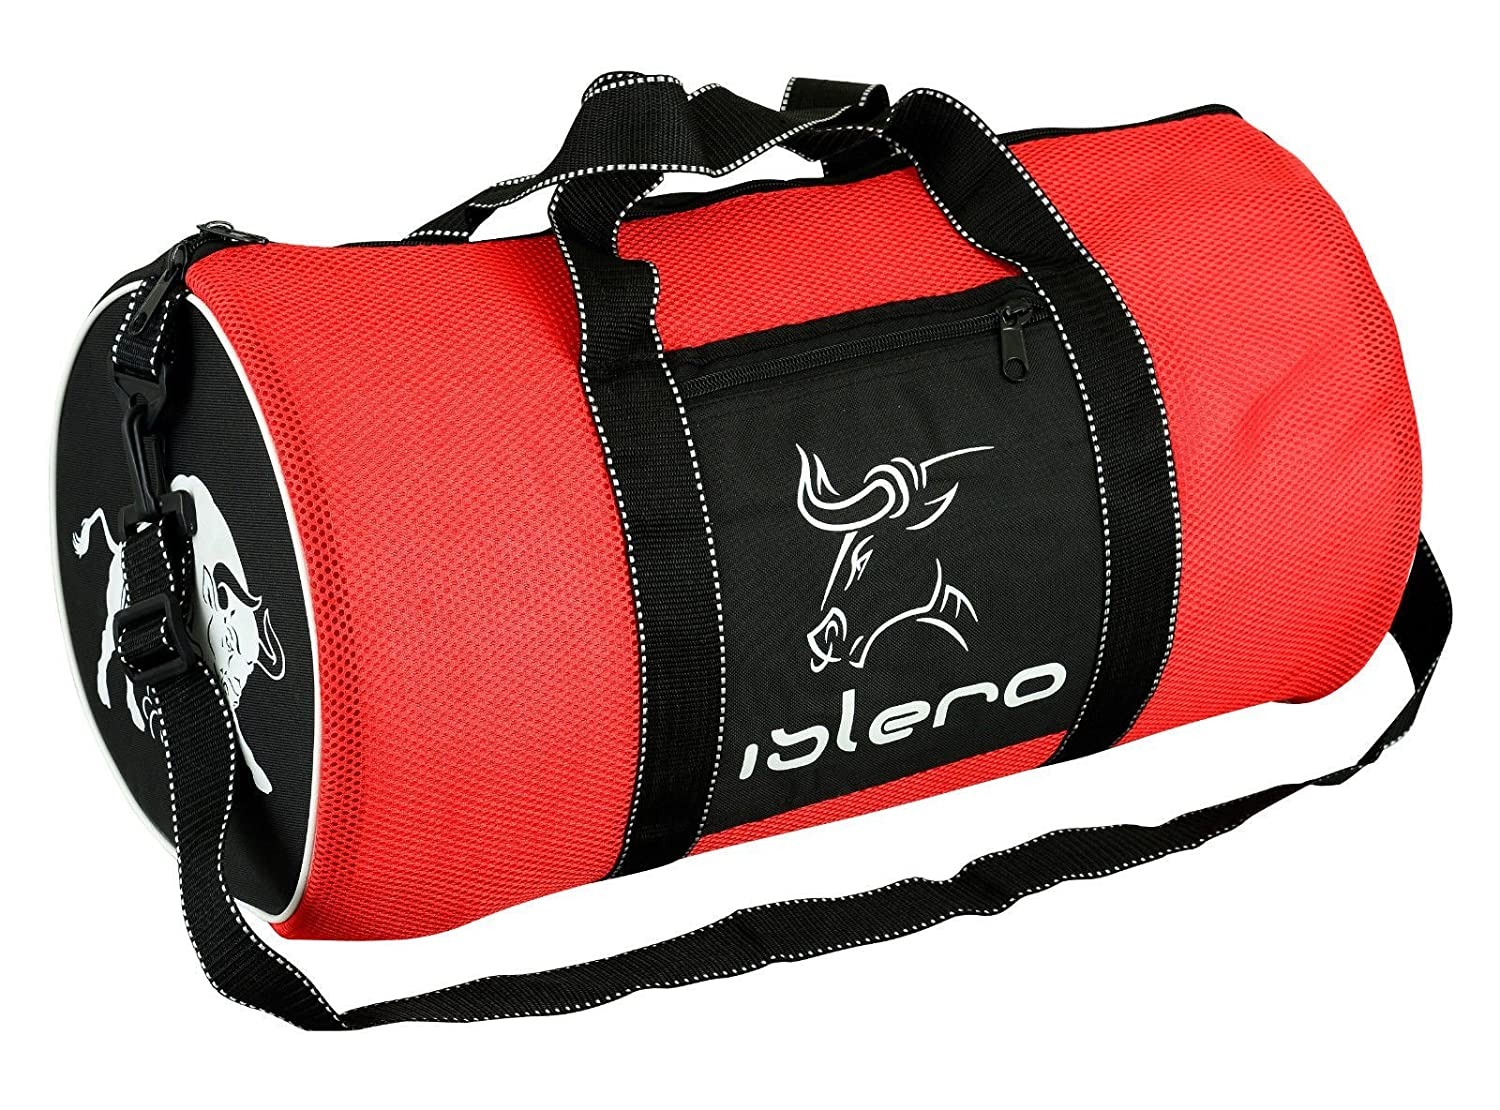 Islero GYM Sports kit bag Holdall Duffle hand carry Training MMA Boxing Weightlifting Islero Fitness